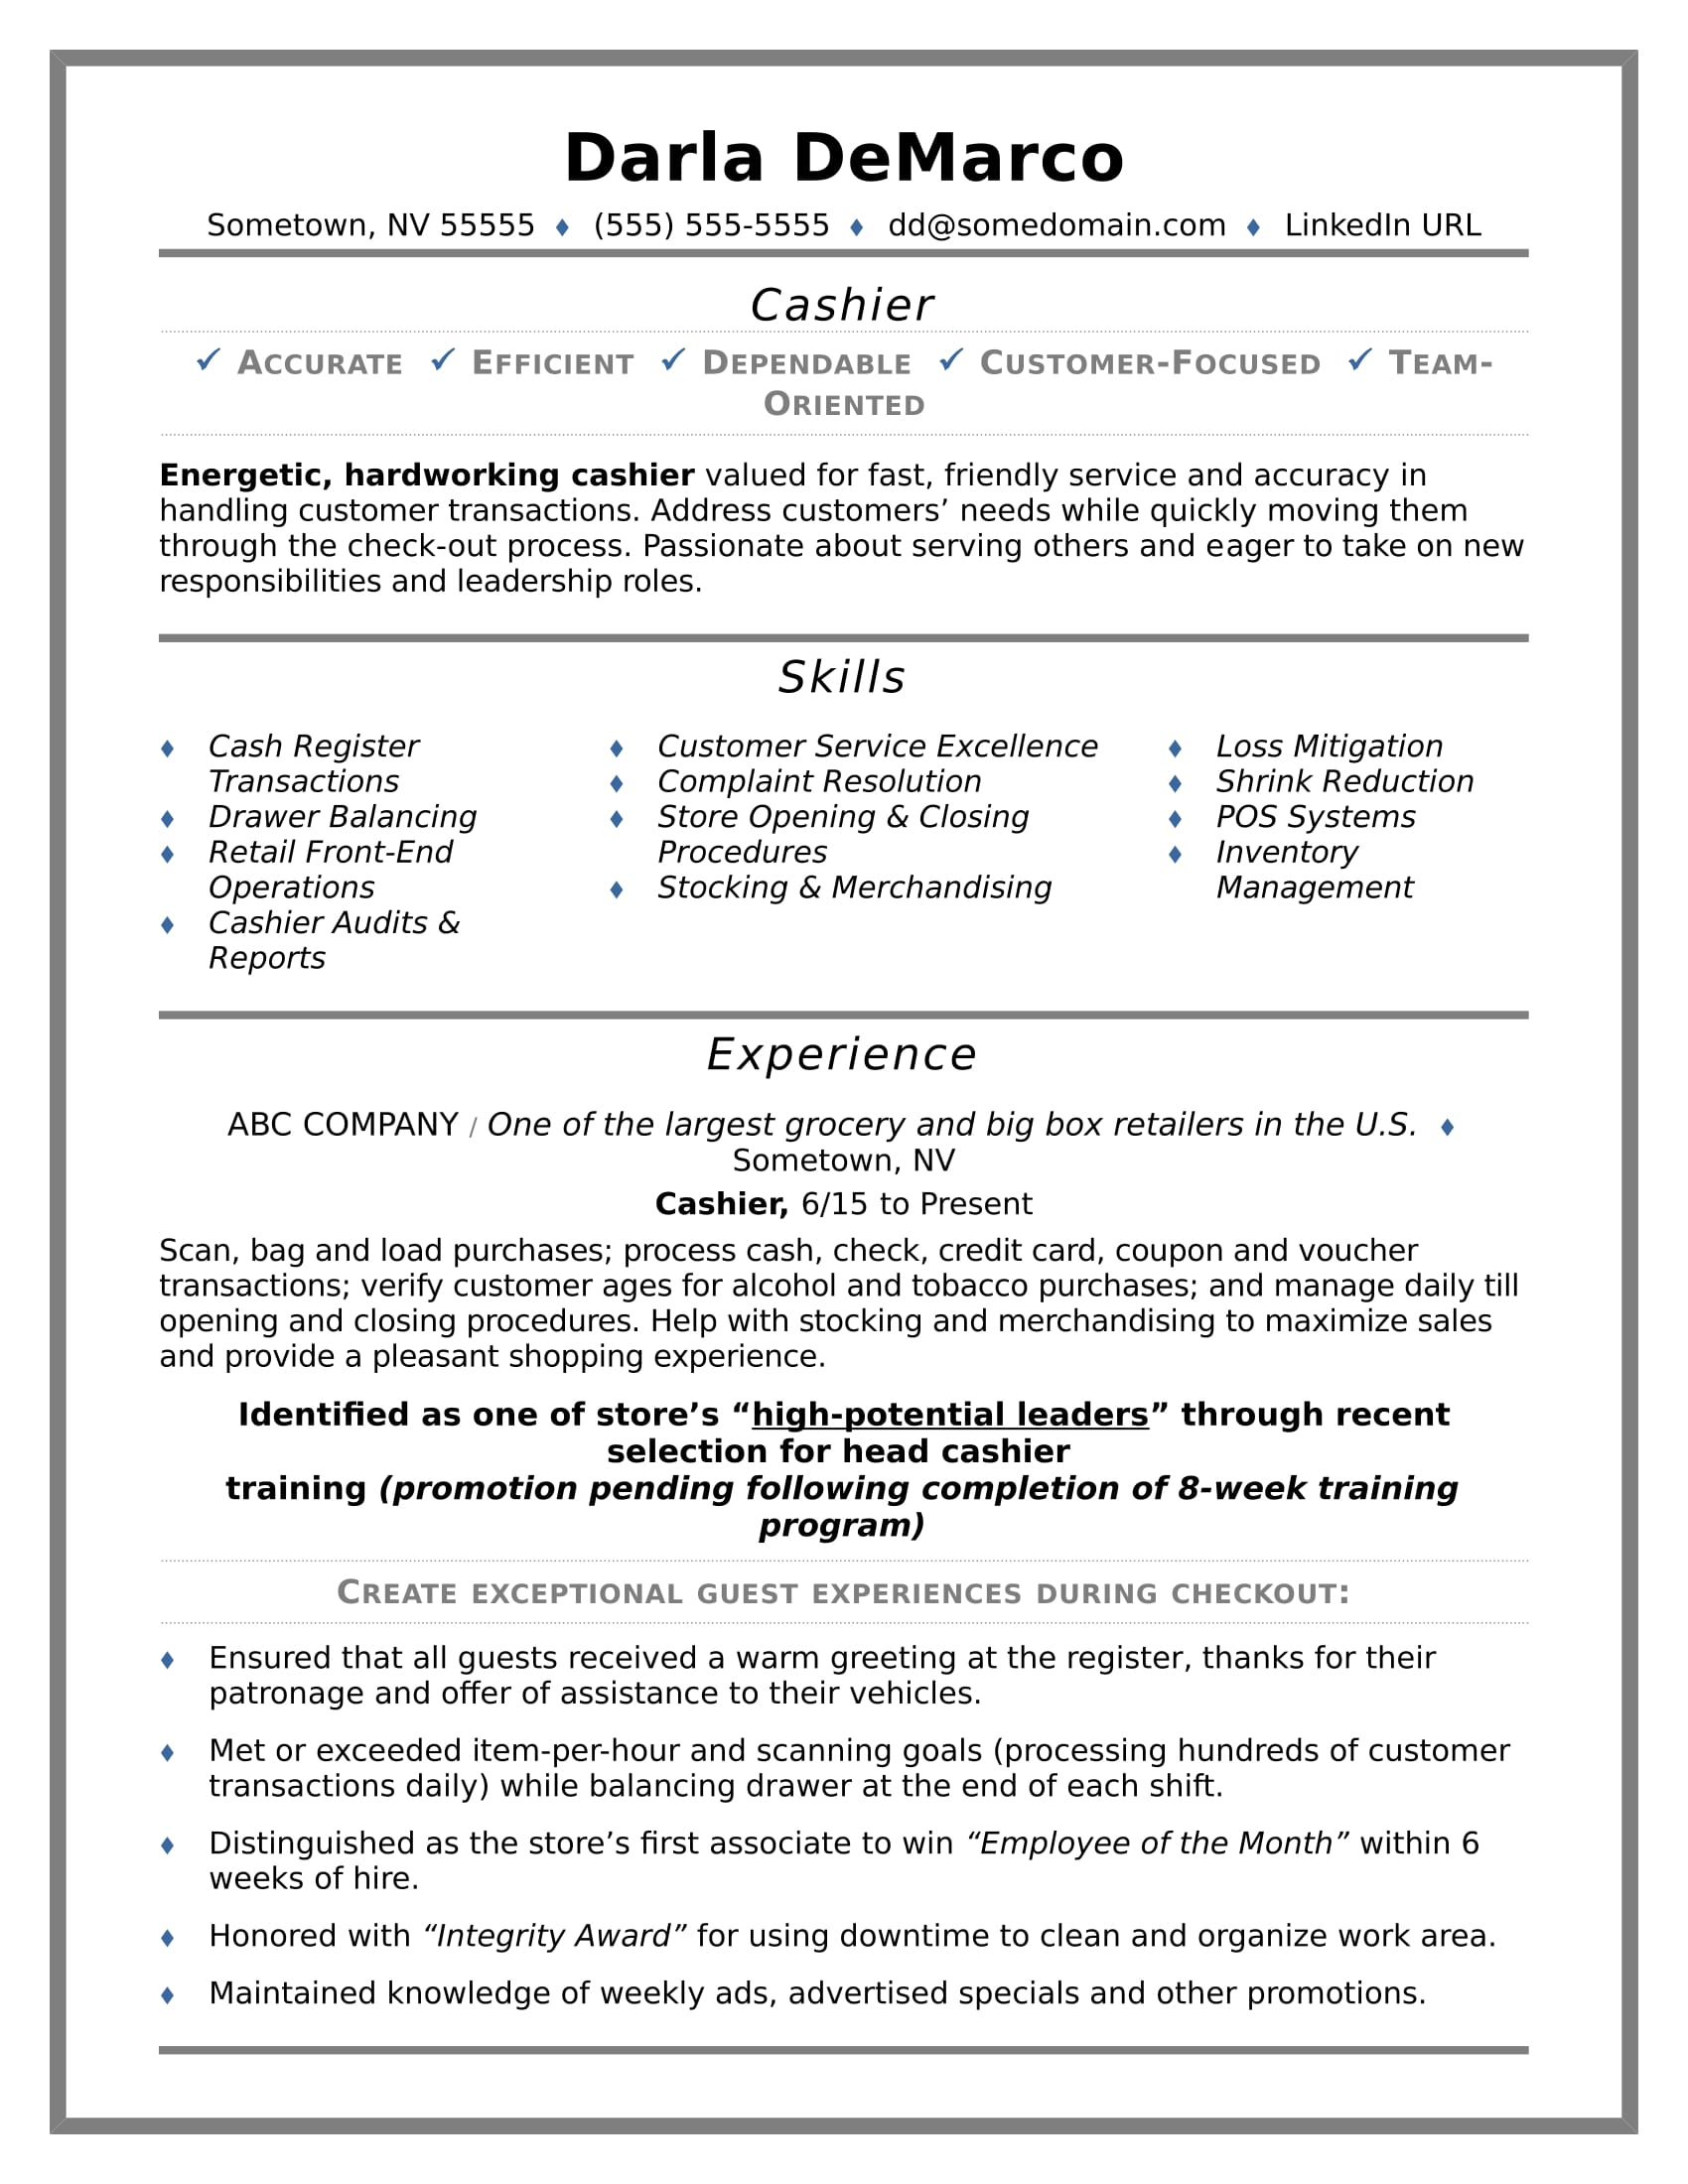 Cashier Resume Sample  Resume Experience